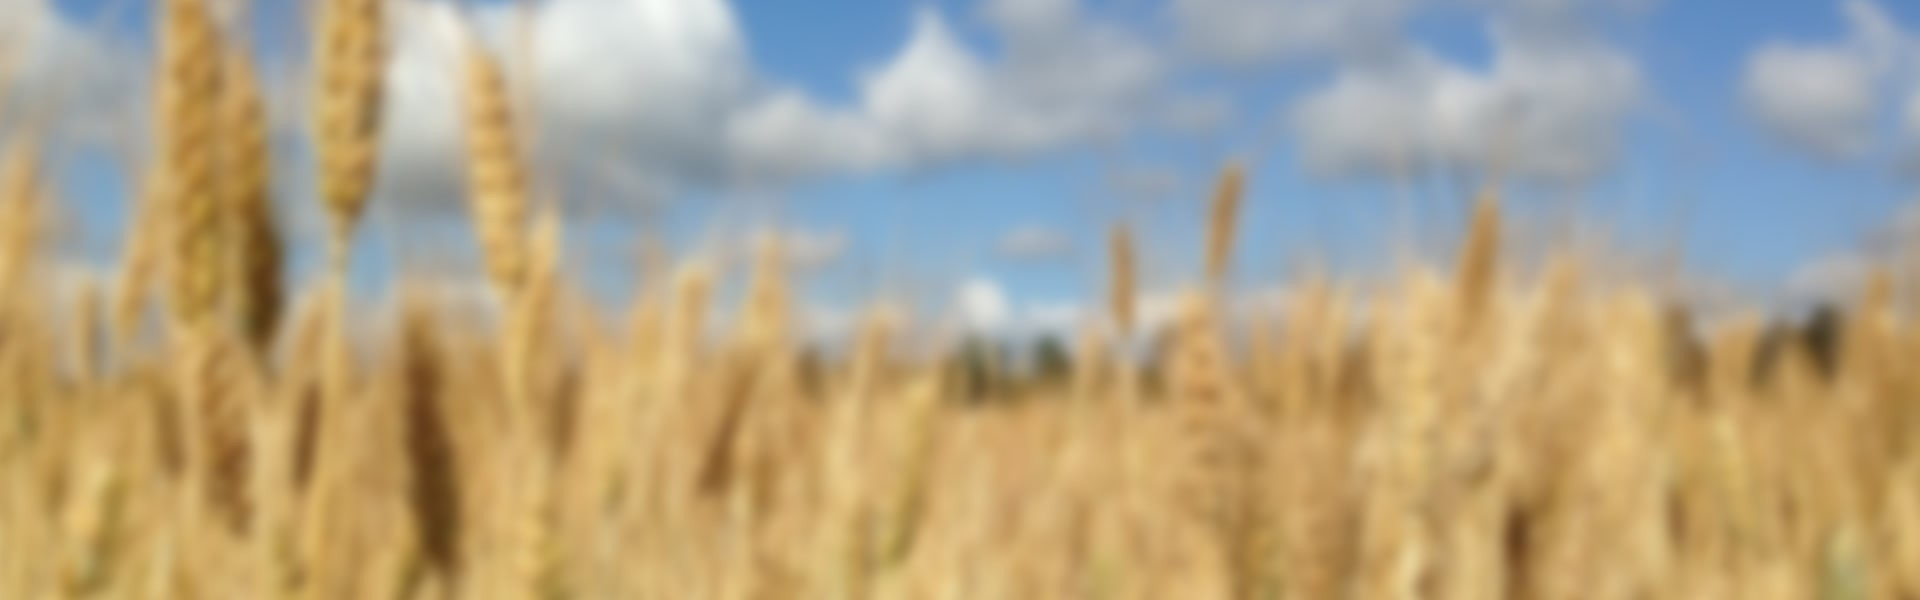 amber-waves-of-grain-blurred